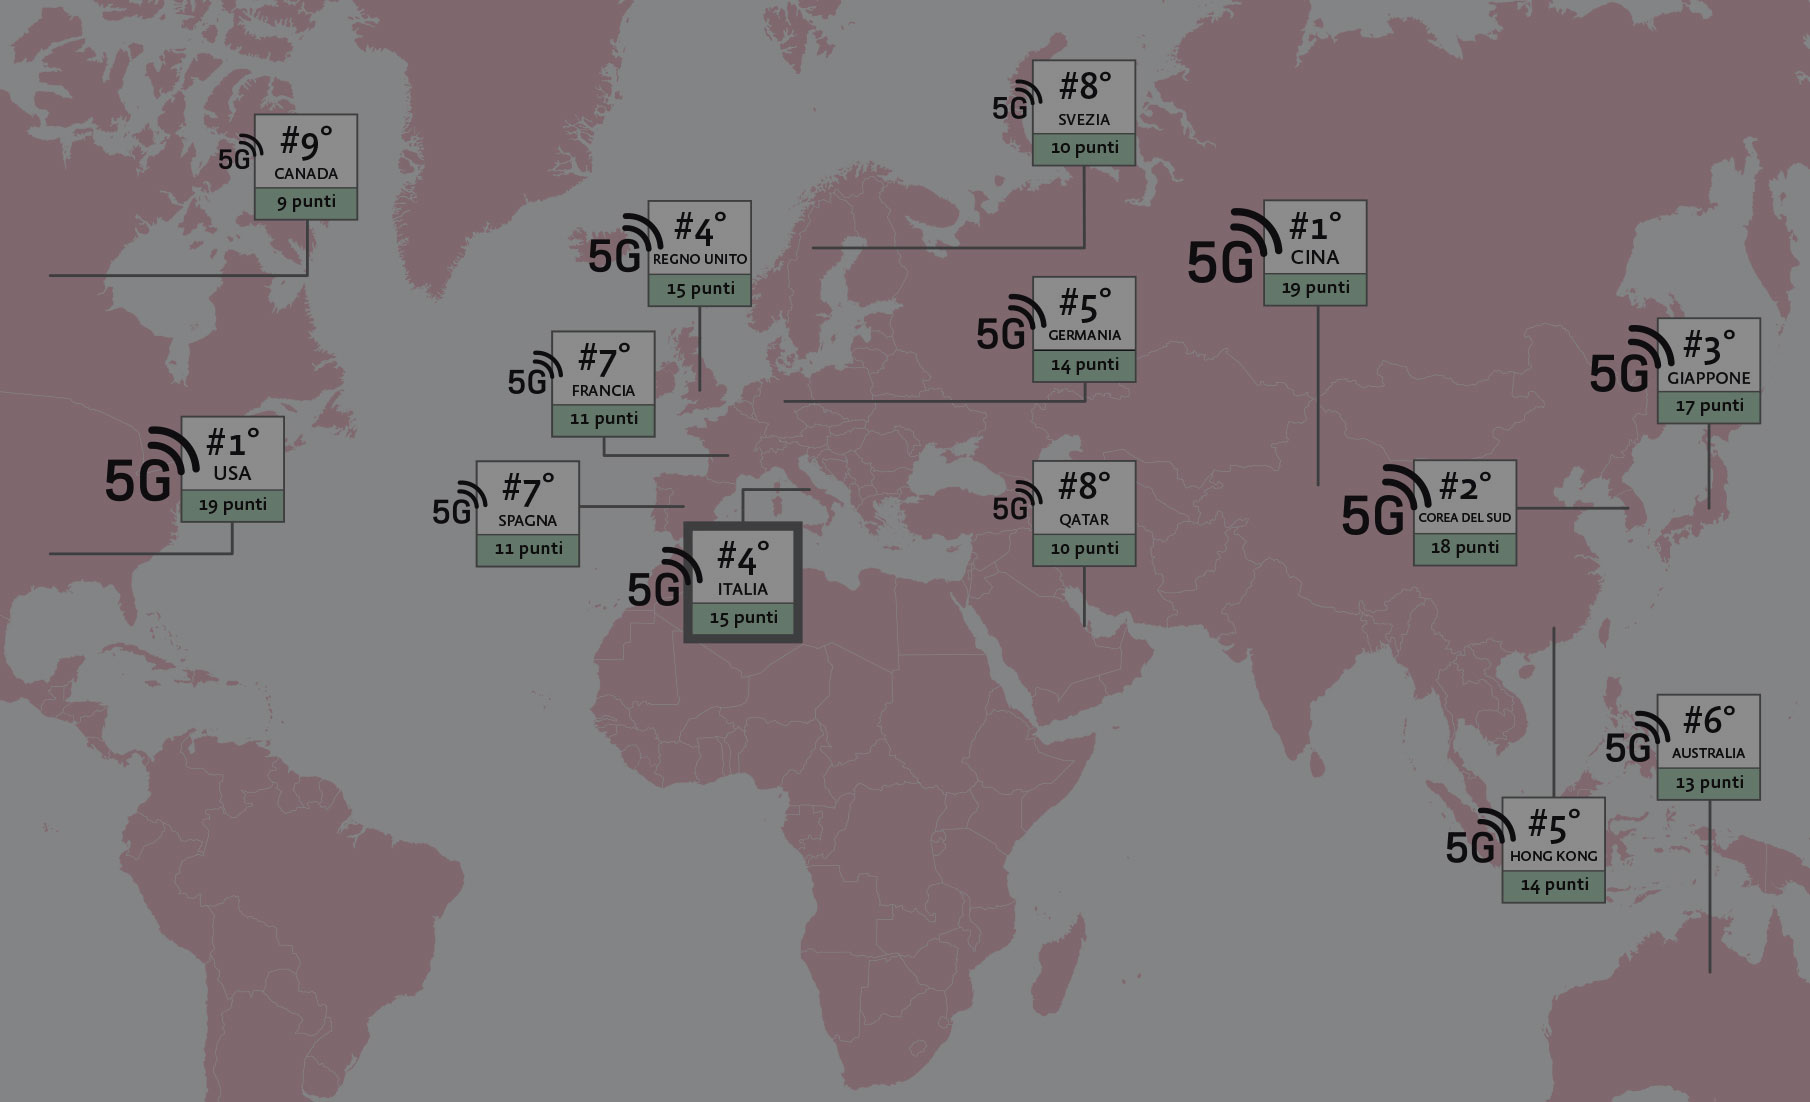 5G: Italy among the nations with the primacy for experimentation and achievements.